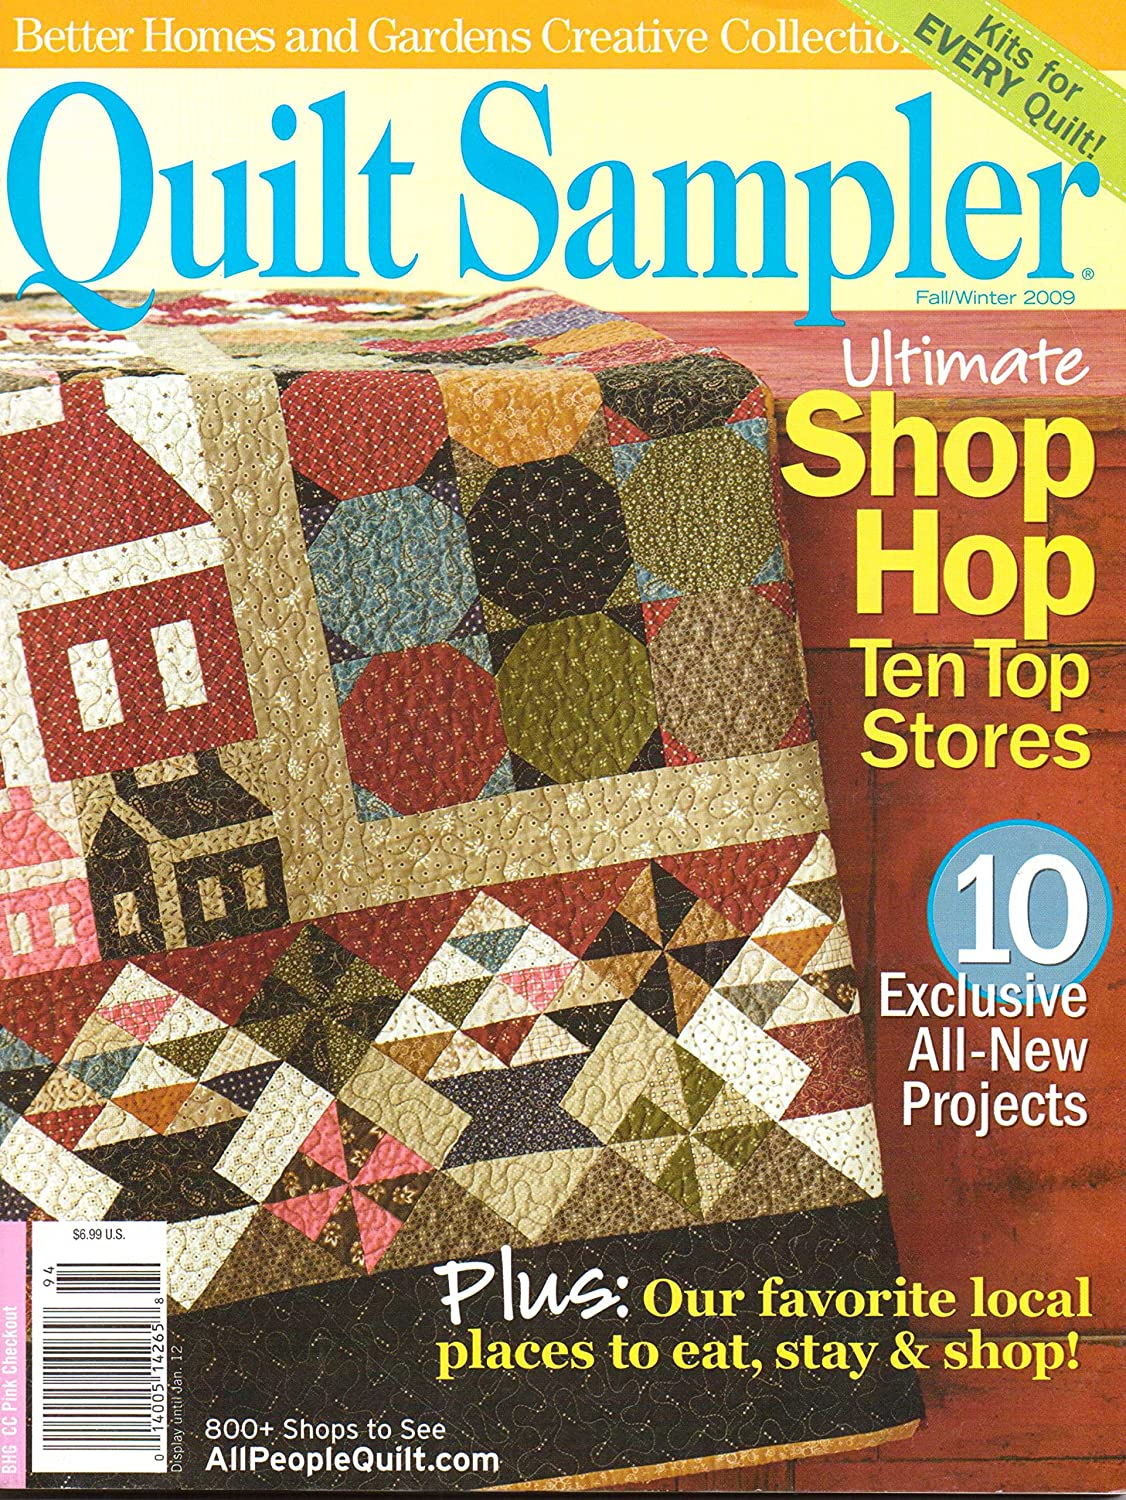 Amazon.com : Better Homes and Gardens Creative Collection: Quilt ...